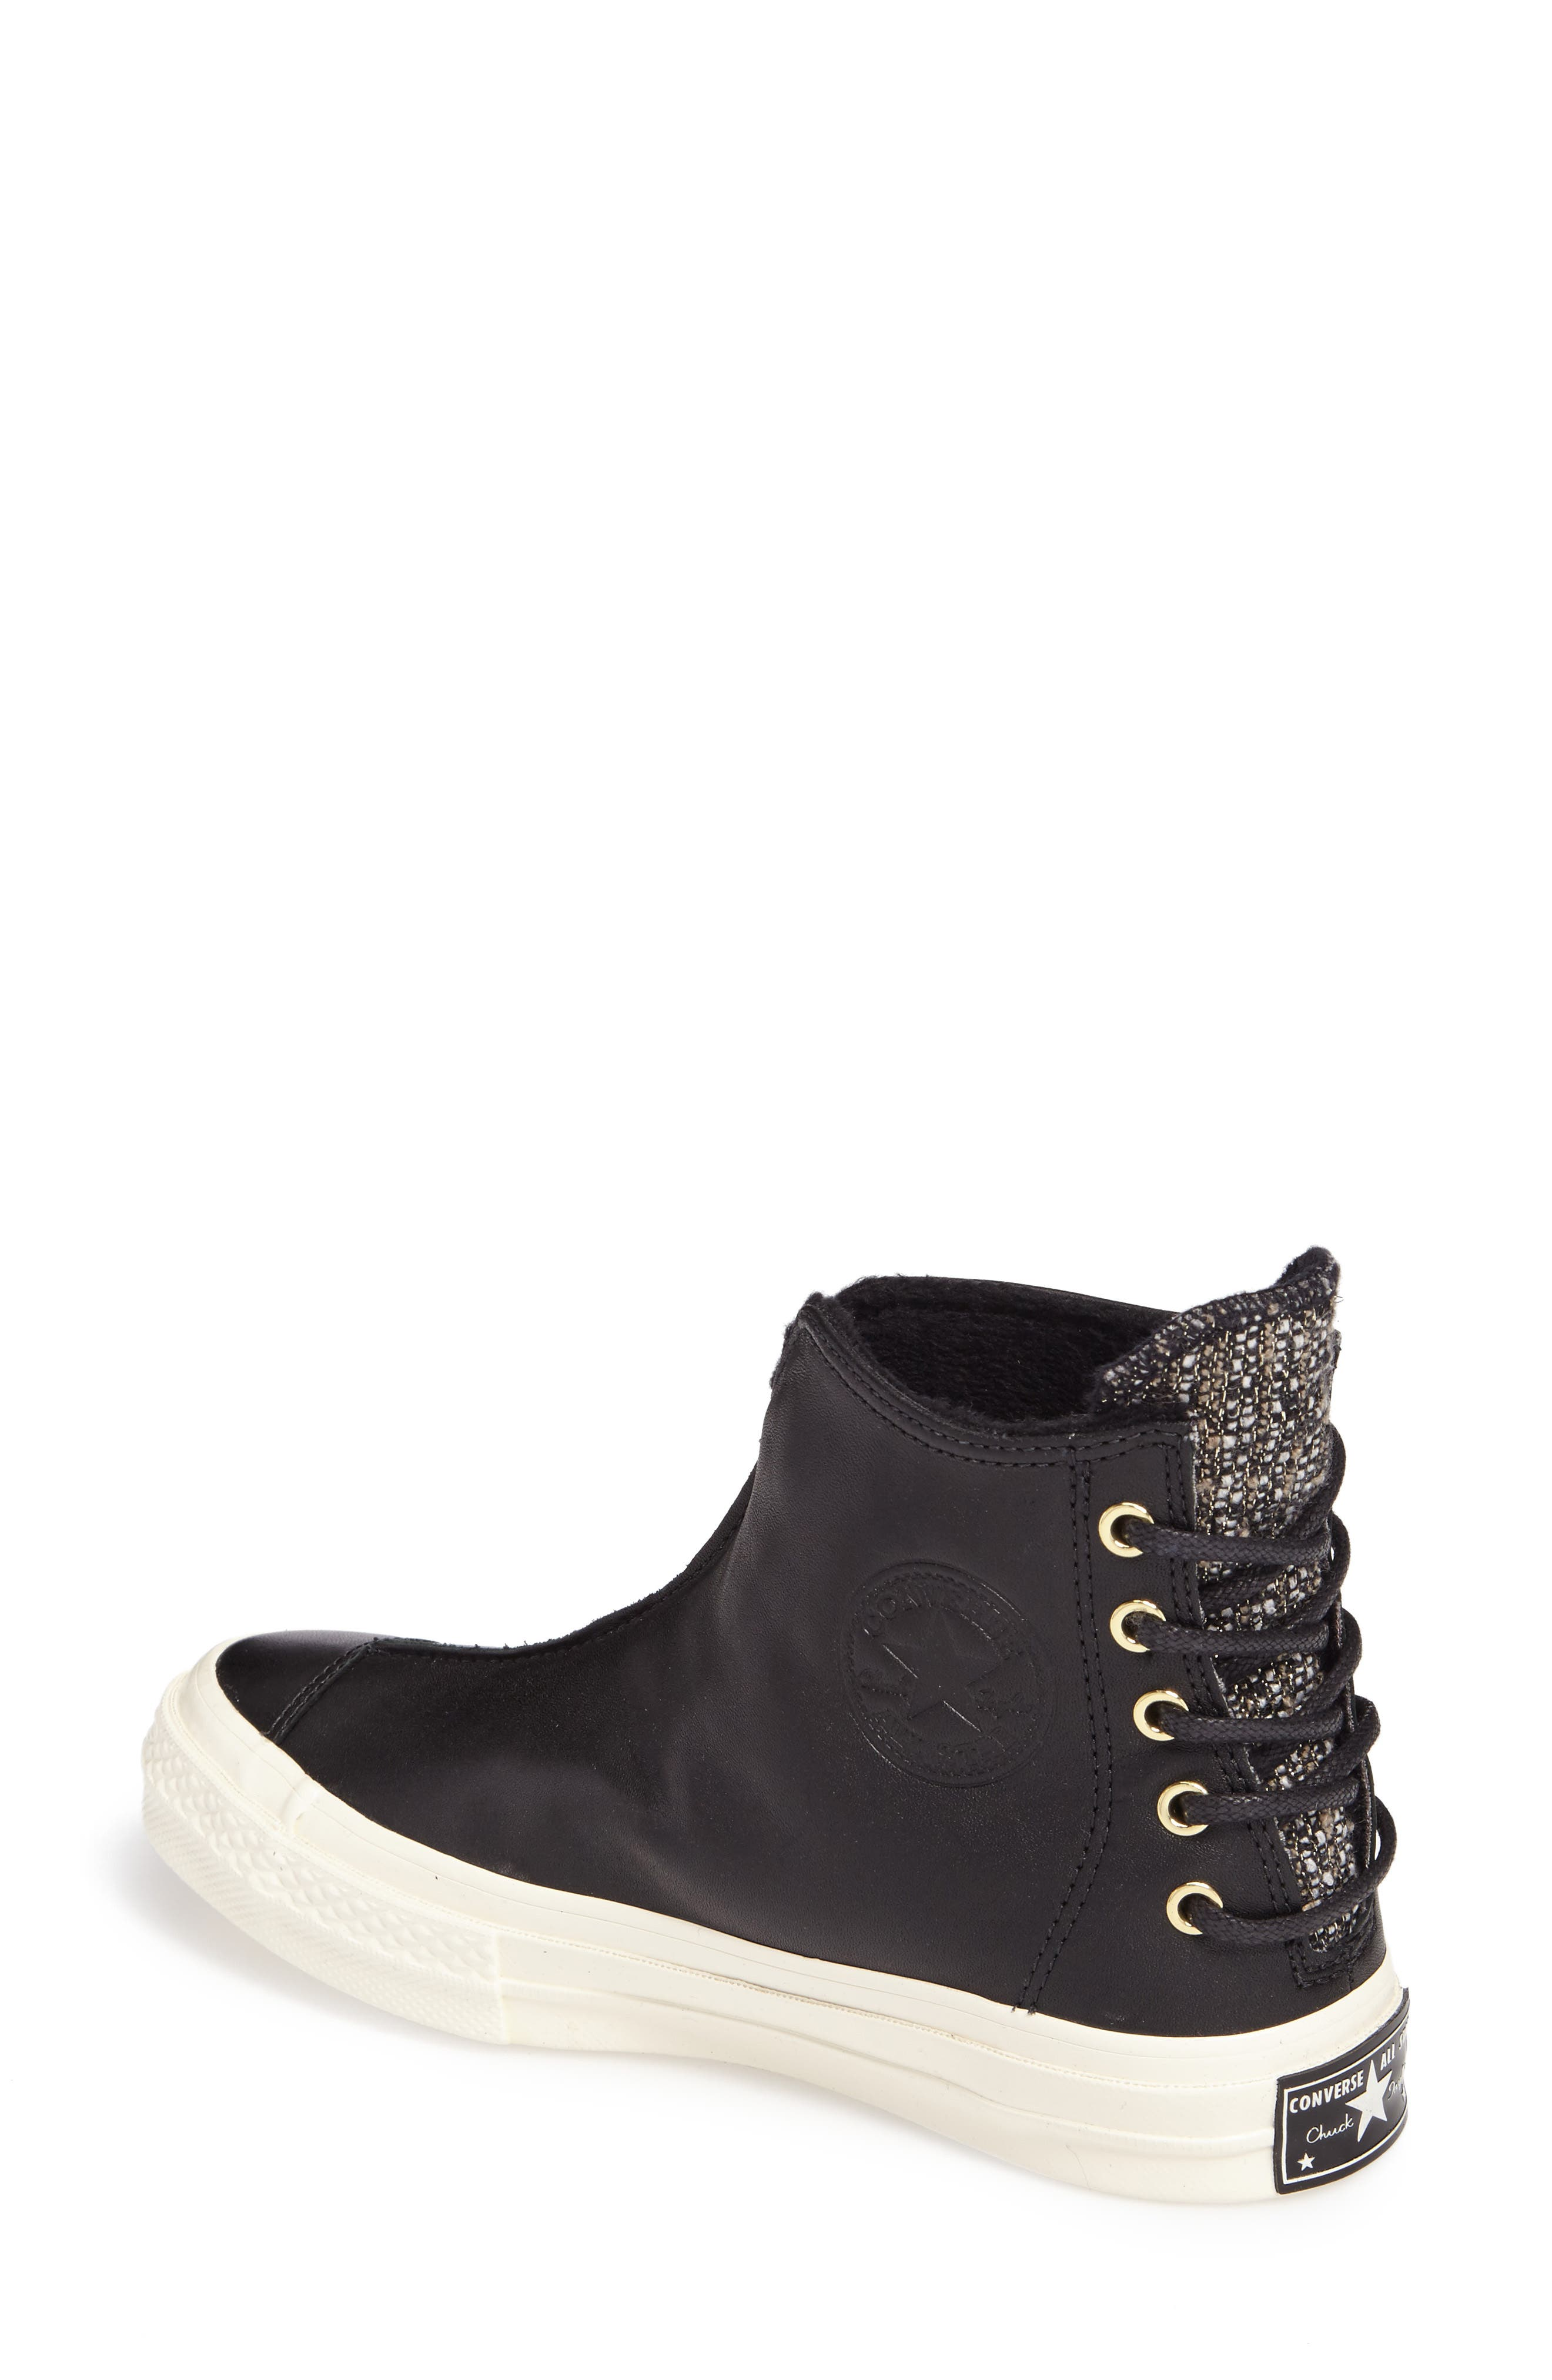 Chuck Taylor<sup>®</sup> All Star<sup>®</sup> Chuck 70 Punk Sneaker Boot,                             Alternate thumbnail 2, color,                             Black Leather